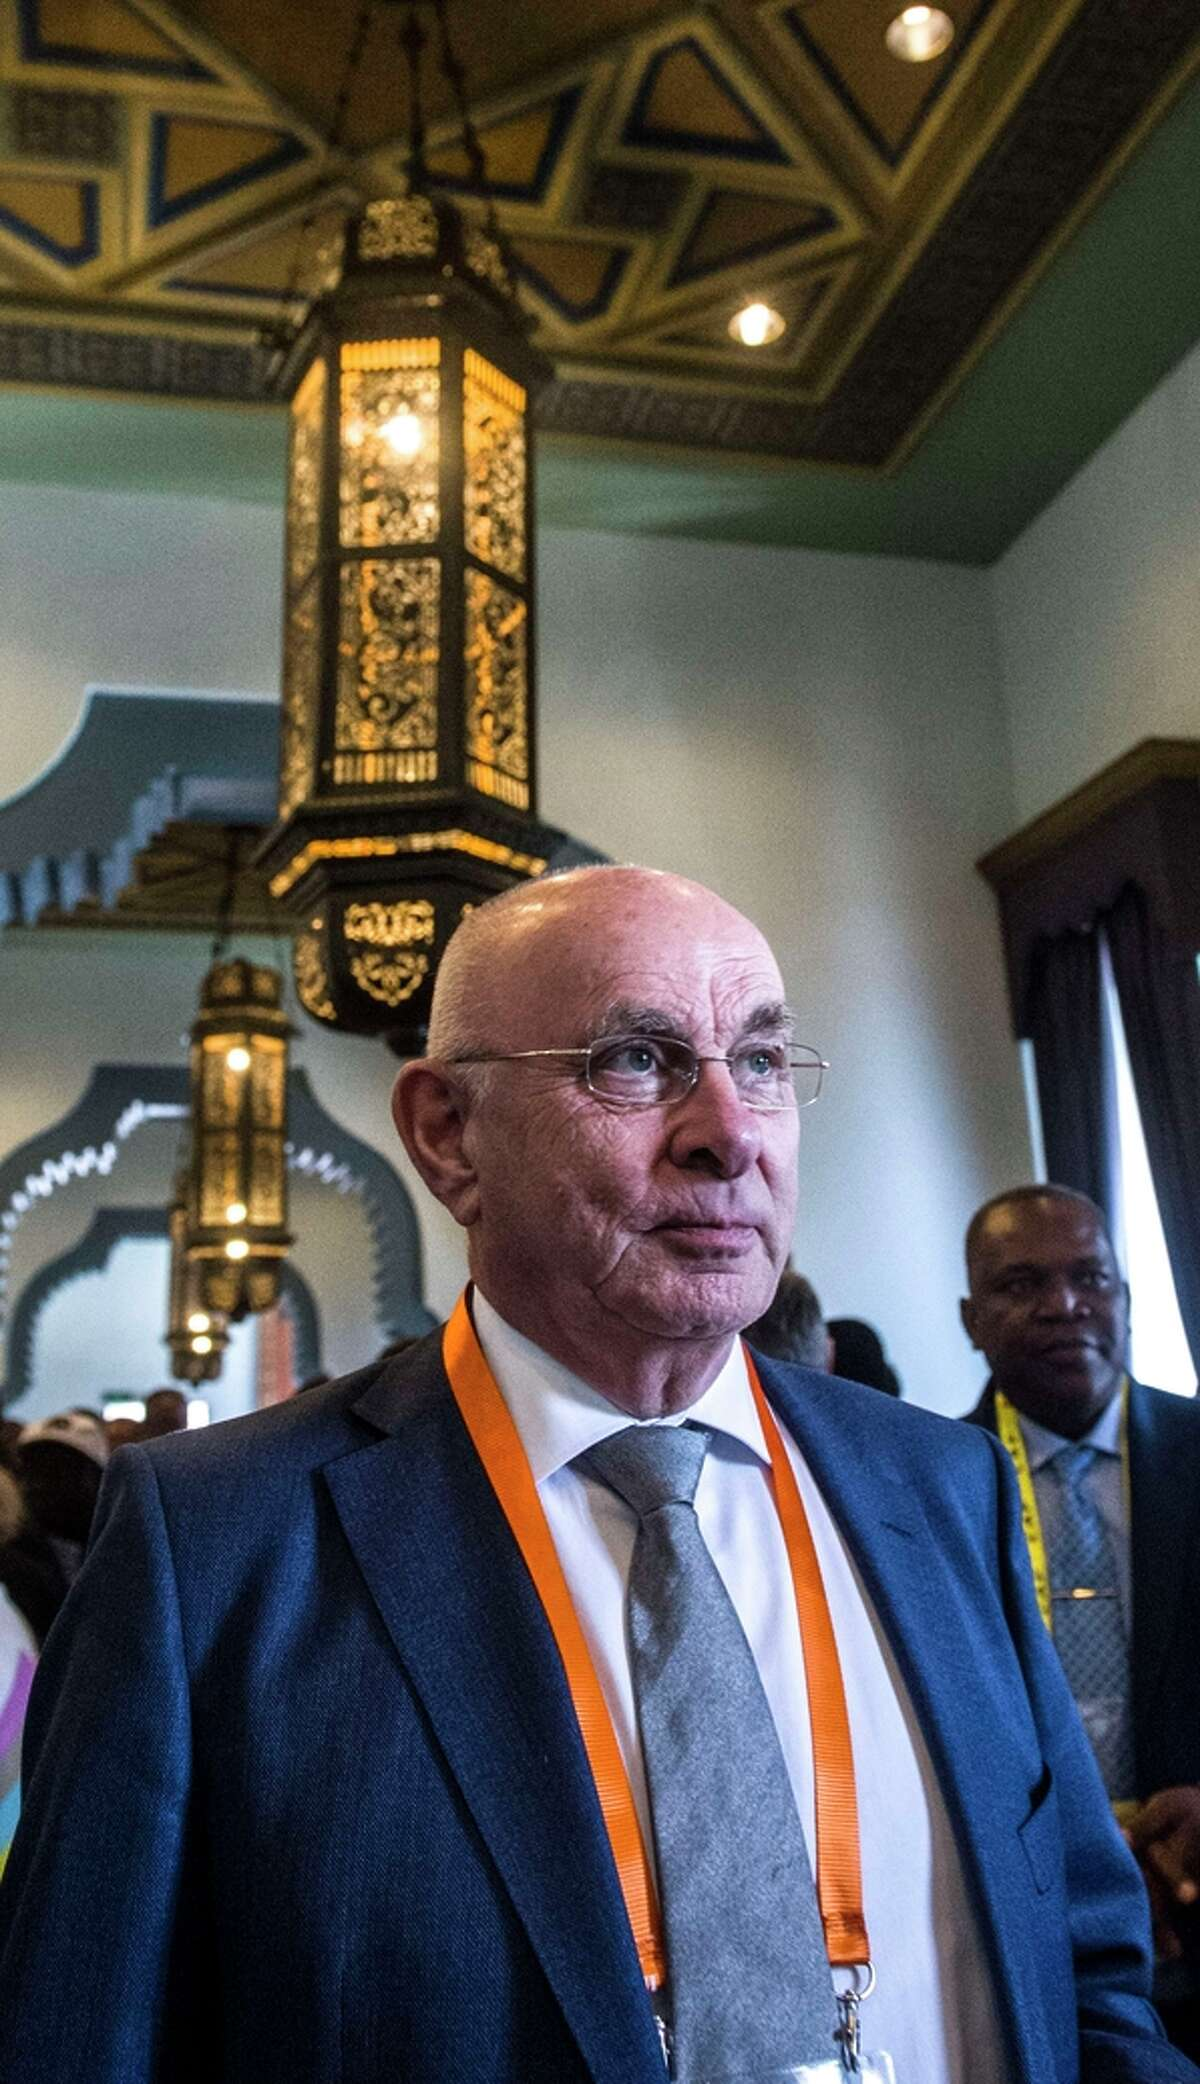 Dutch Football Federation head Michel van Praag, attends the 37th Confederation of African Football (CAF) Ordinary General Assembly on April 7, 2015 in the Egyptian capital Cairo. Outgoing FIFA president Sepp Blatter, whose leadership has been plagued by scandal, has headed FIFA since 1998, and is now competing against three rivals for the top world football job -- Jordanian Prince Ali bin Al Hussein, Dutchman Michel van Praag and former Portugal star Luis Figo. AFP PHOTO / KHALED DESOUKIKHALED DESOUKI/AFP/Getty Images